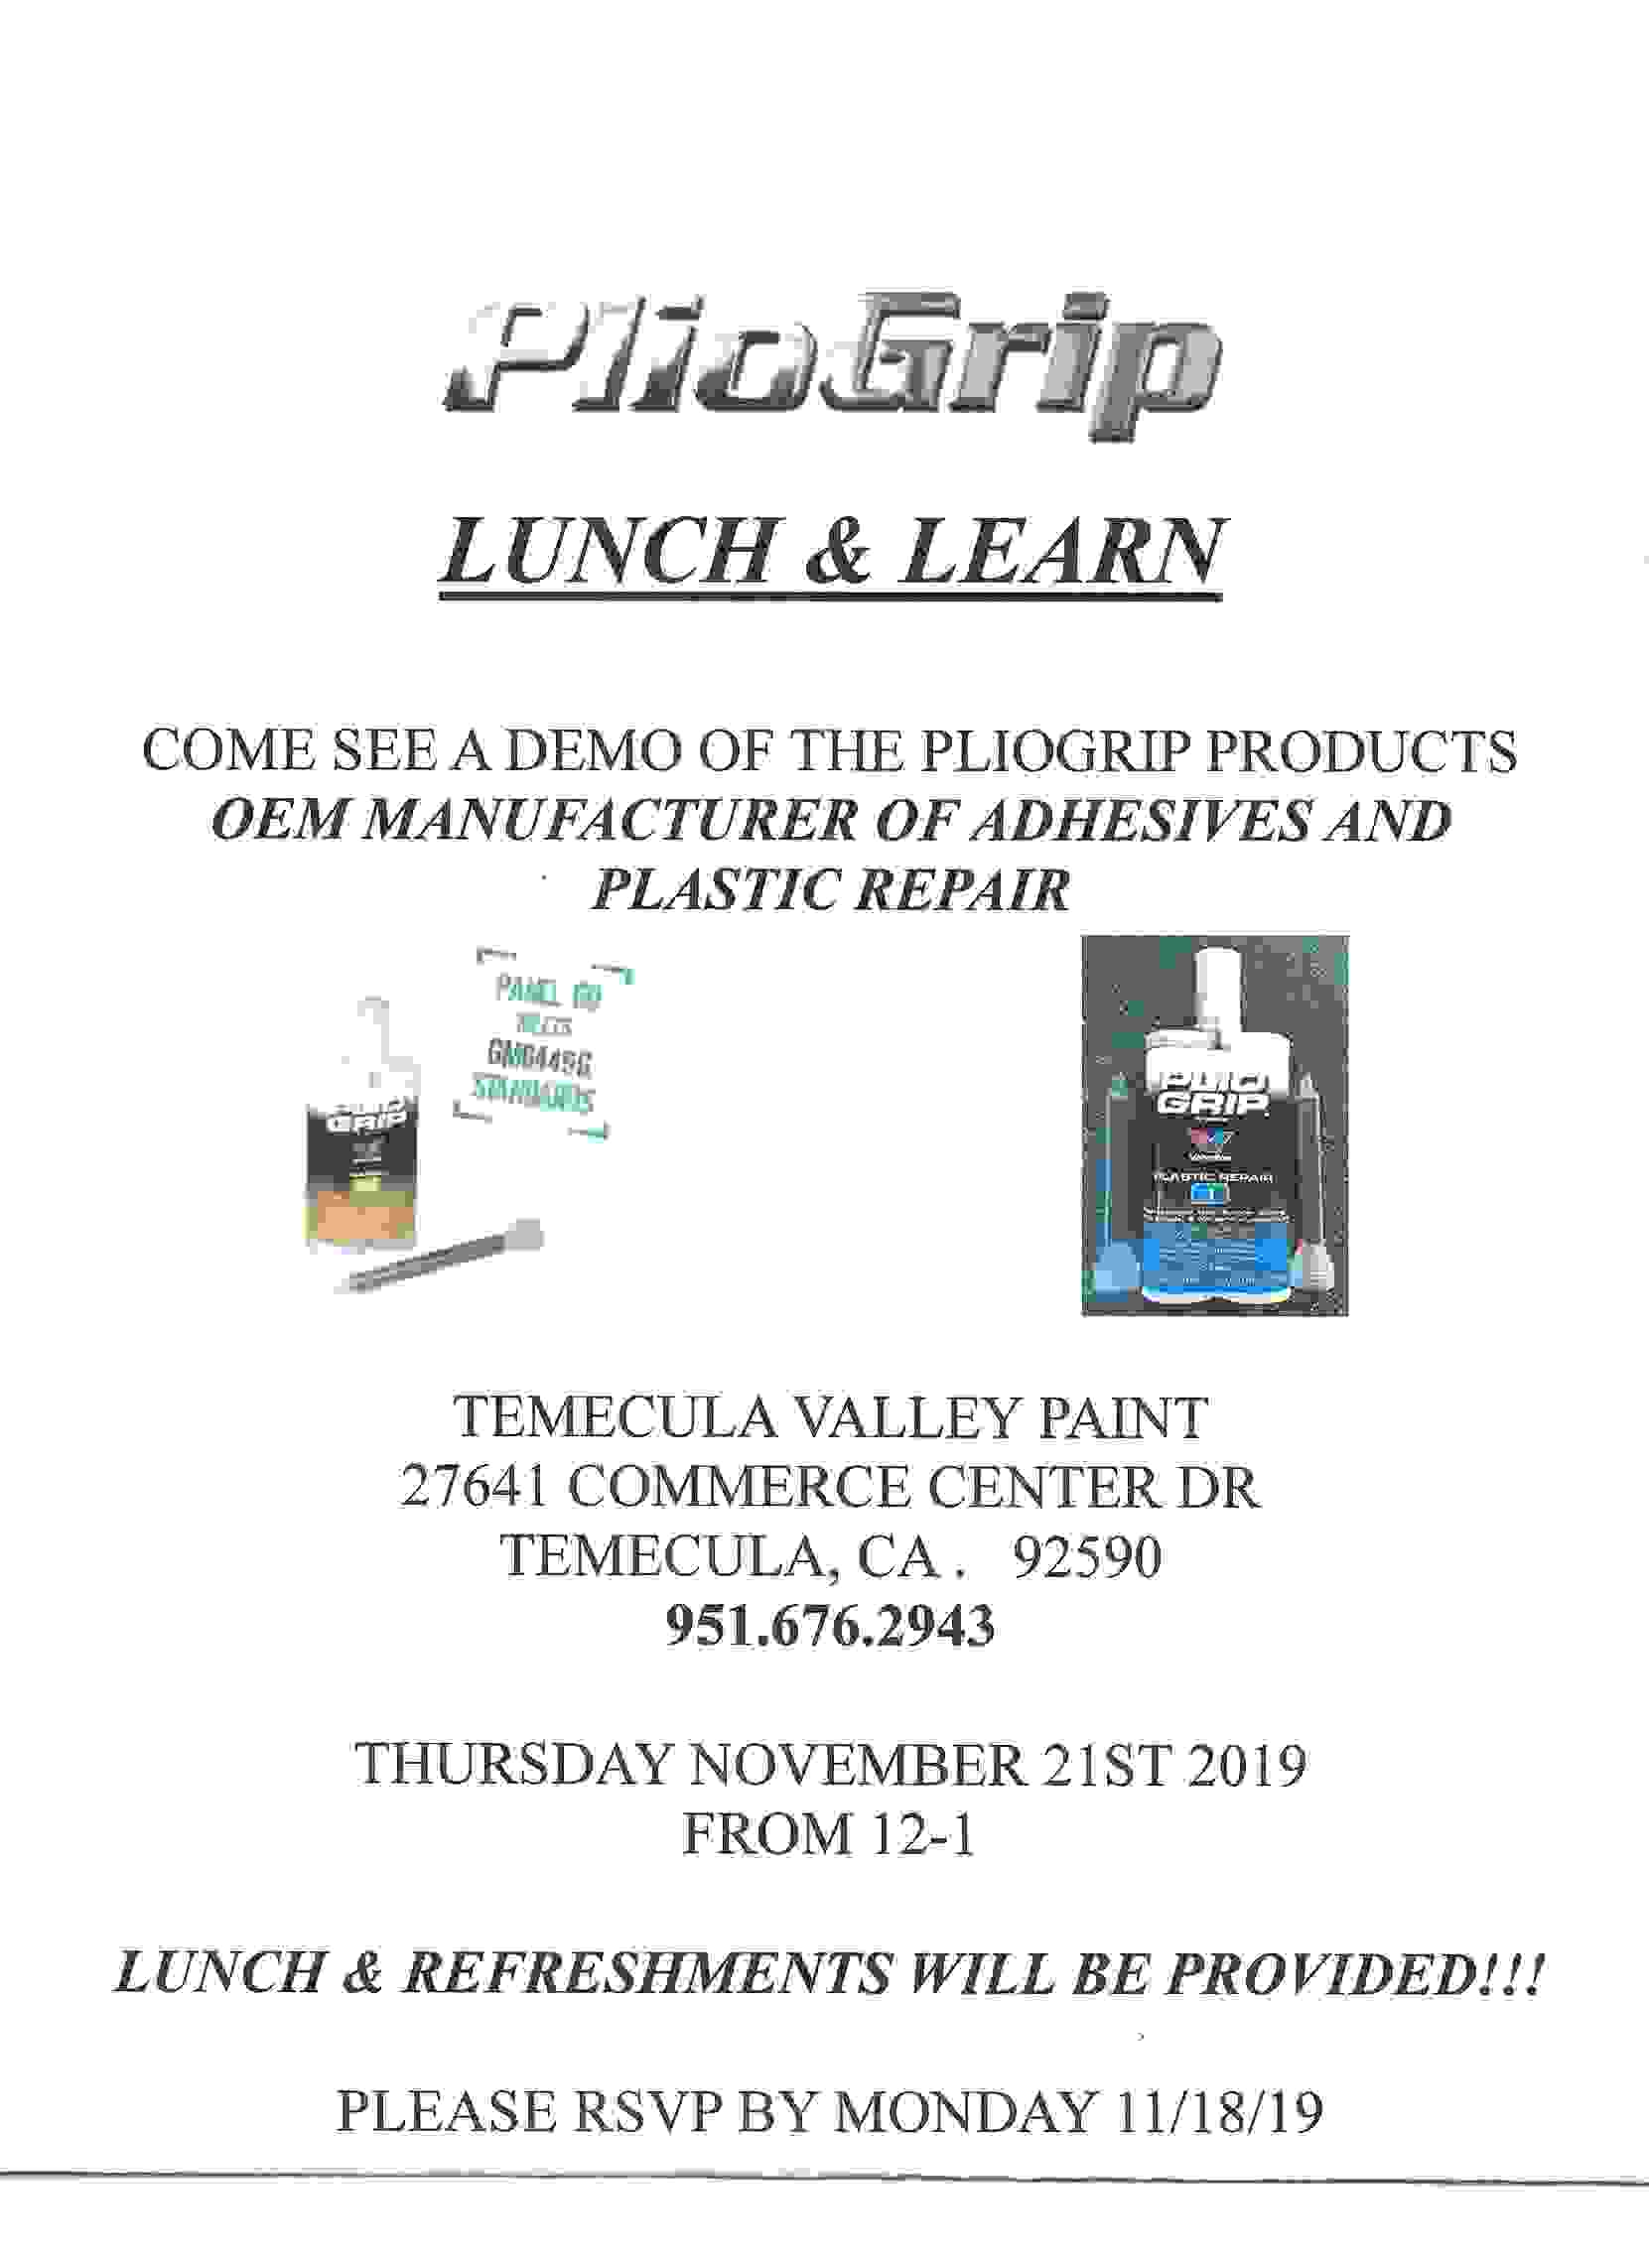 PlioGrip lunch and learn! Thursday November 21st. RSVP please.